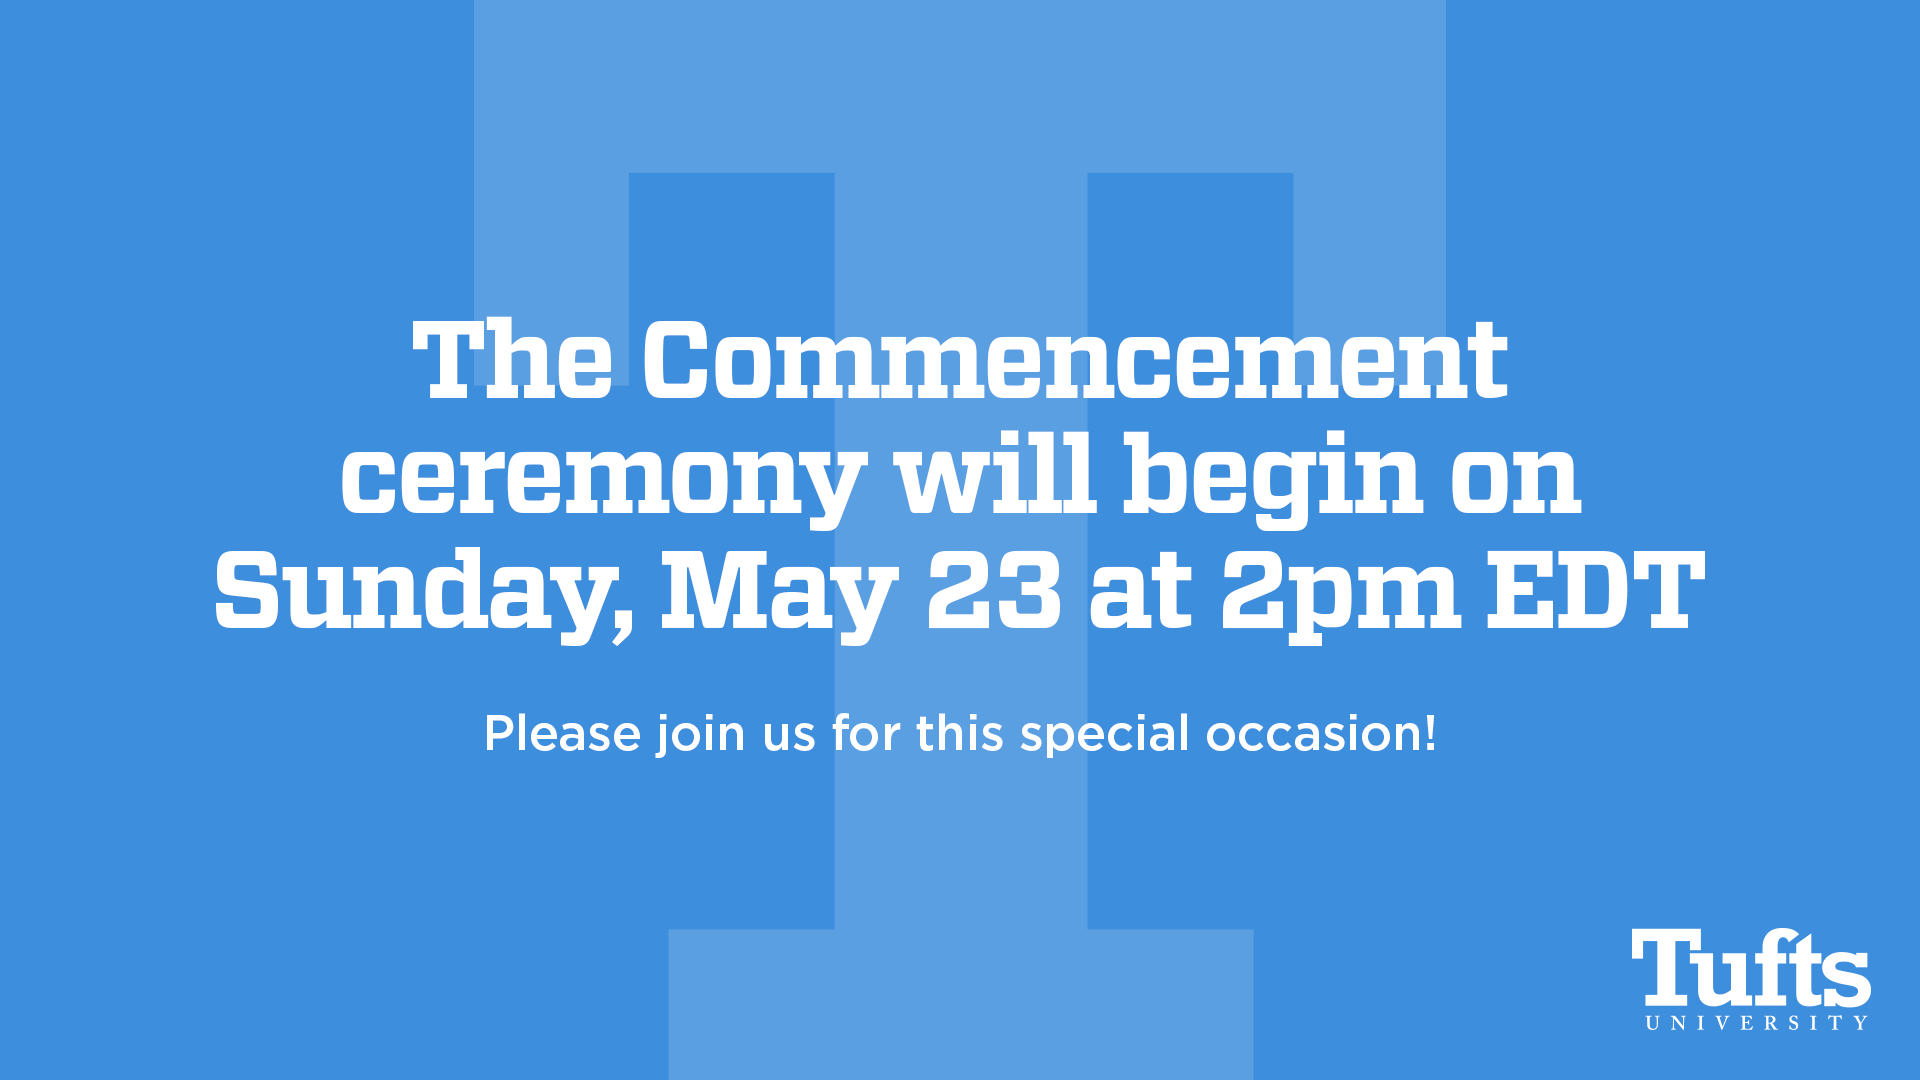 The Commencement ceremony will begin on Sunday, May 23 at 2 p.m. EDT